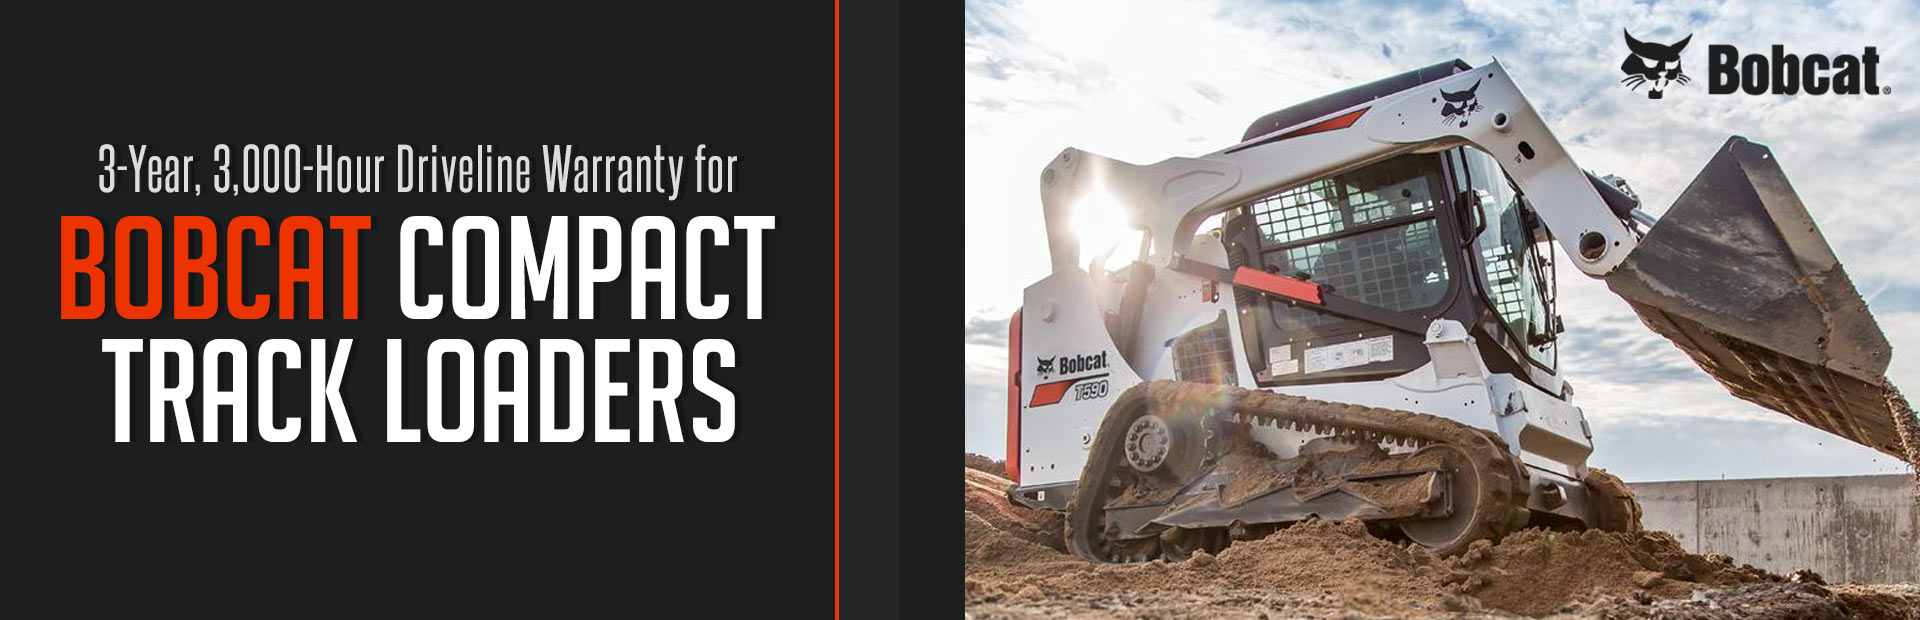 Bobcat: 3Yr 3k-Hr Driveline Warranty for Track Loaders